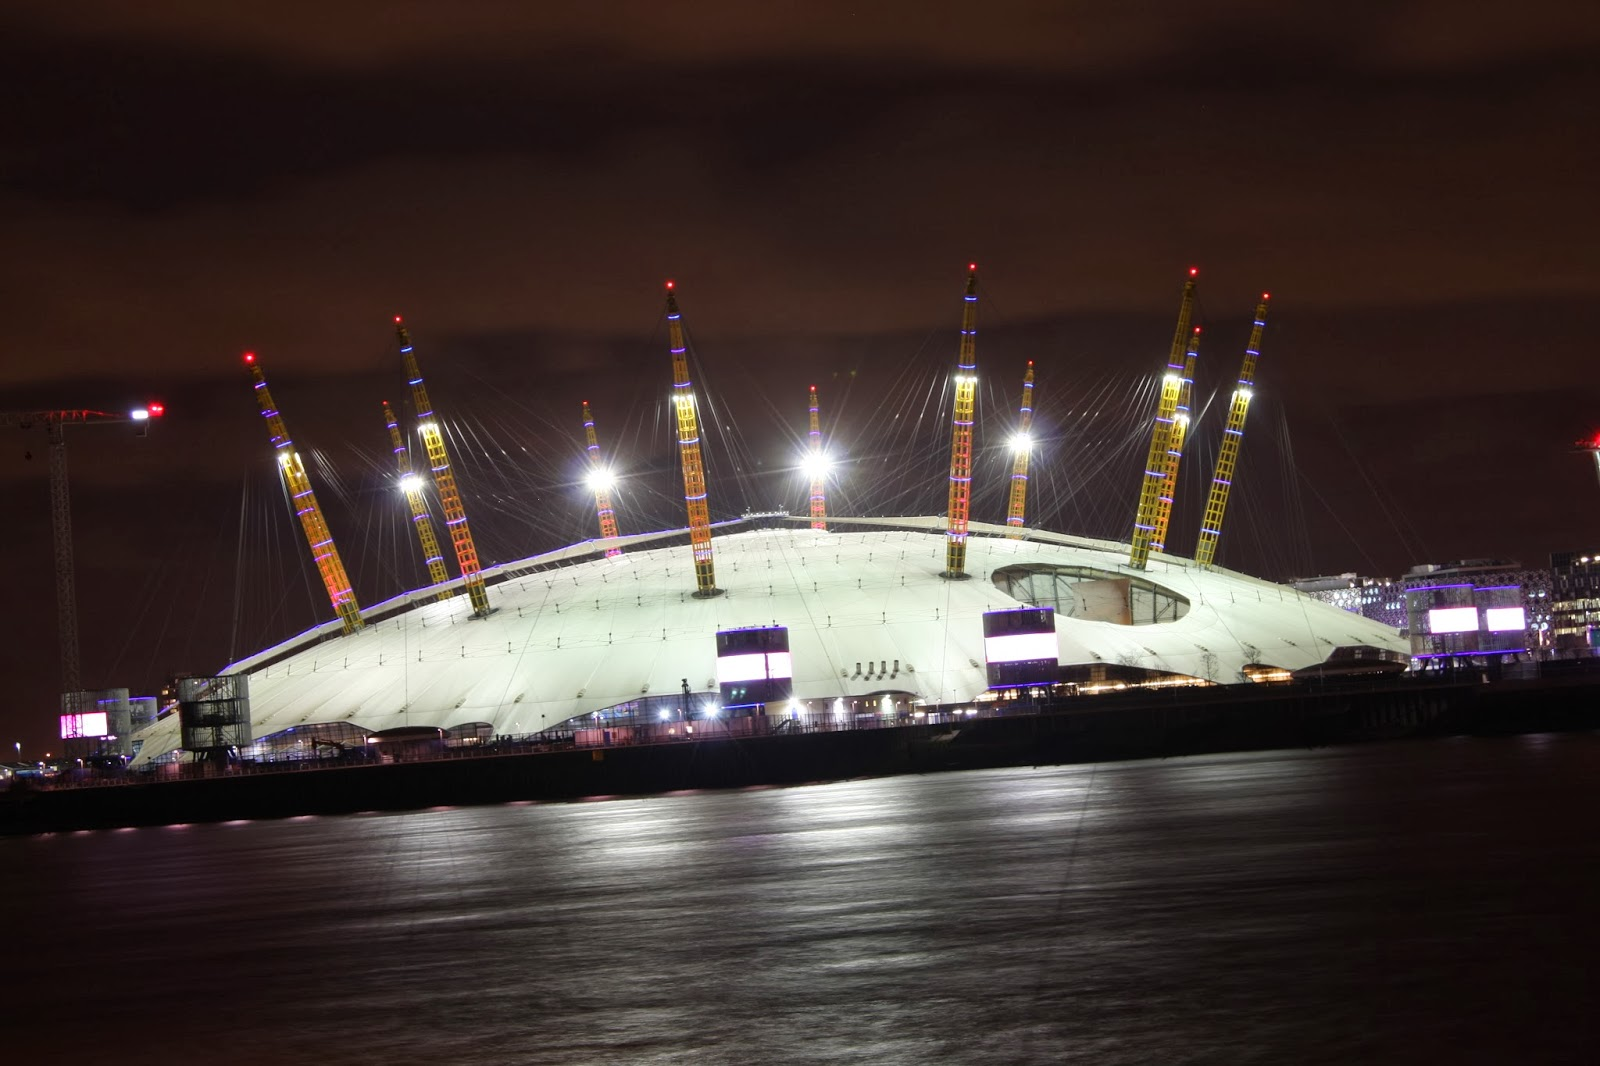 The O2 - Millennium Dome